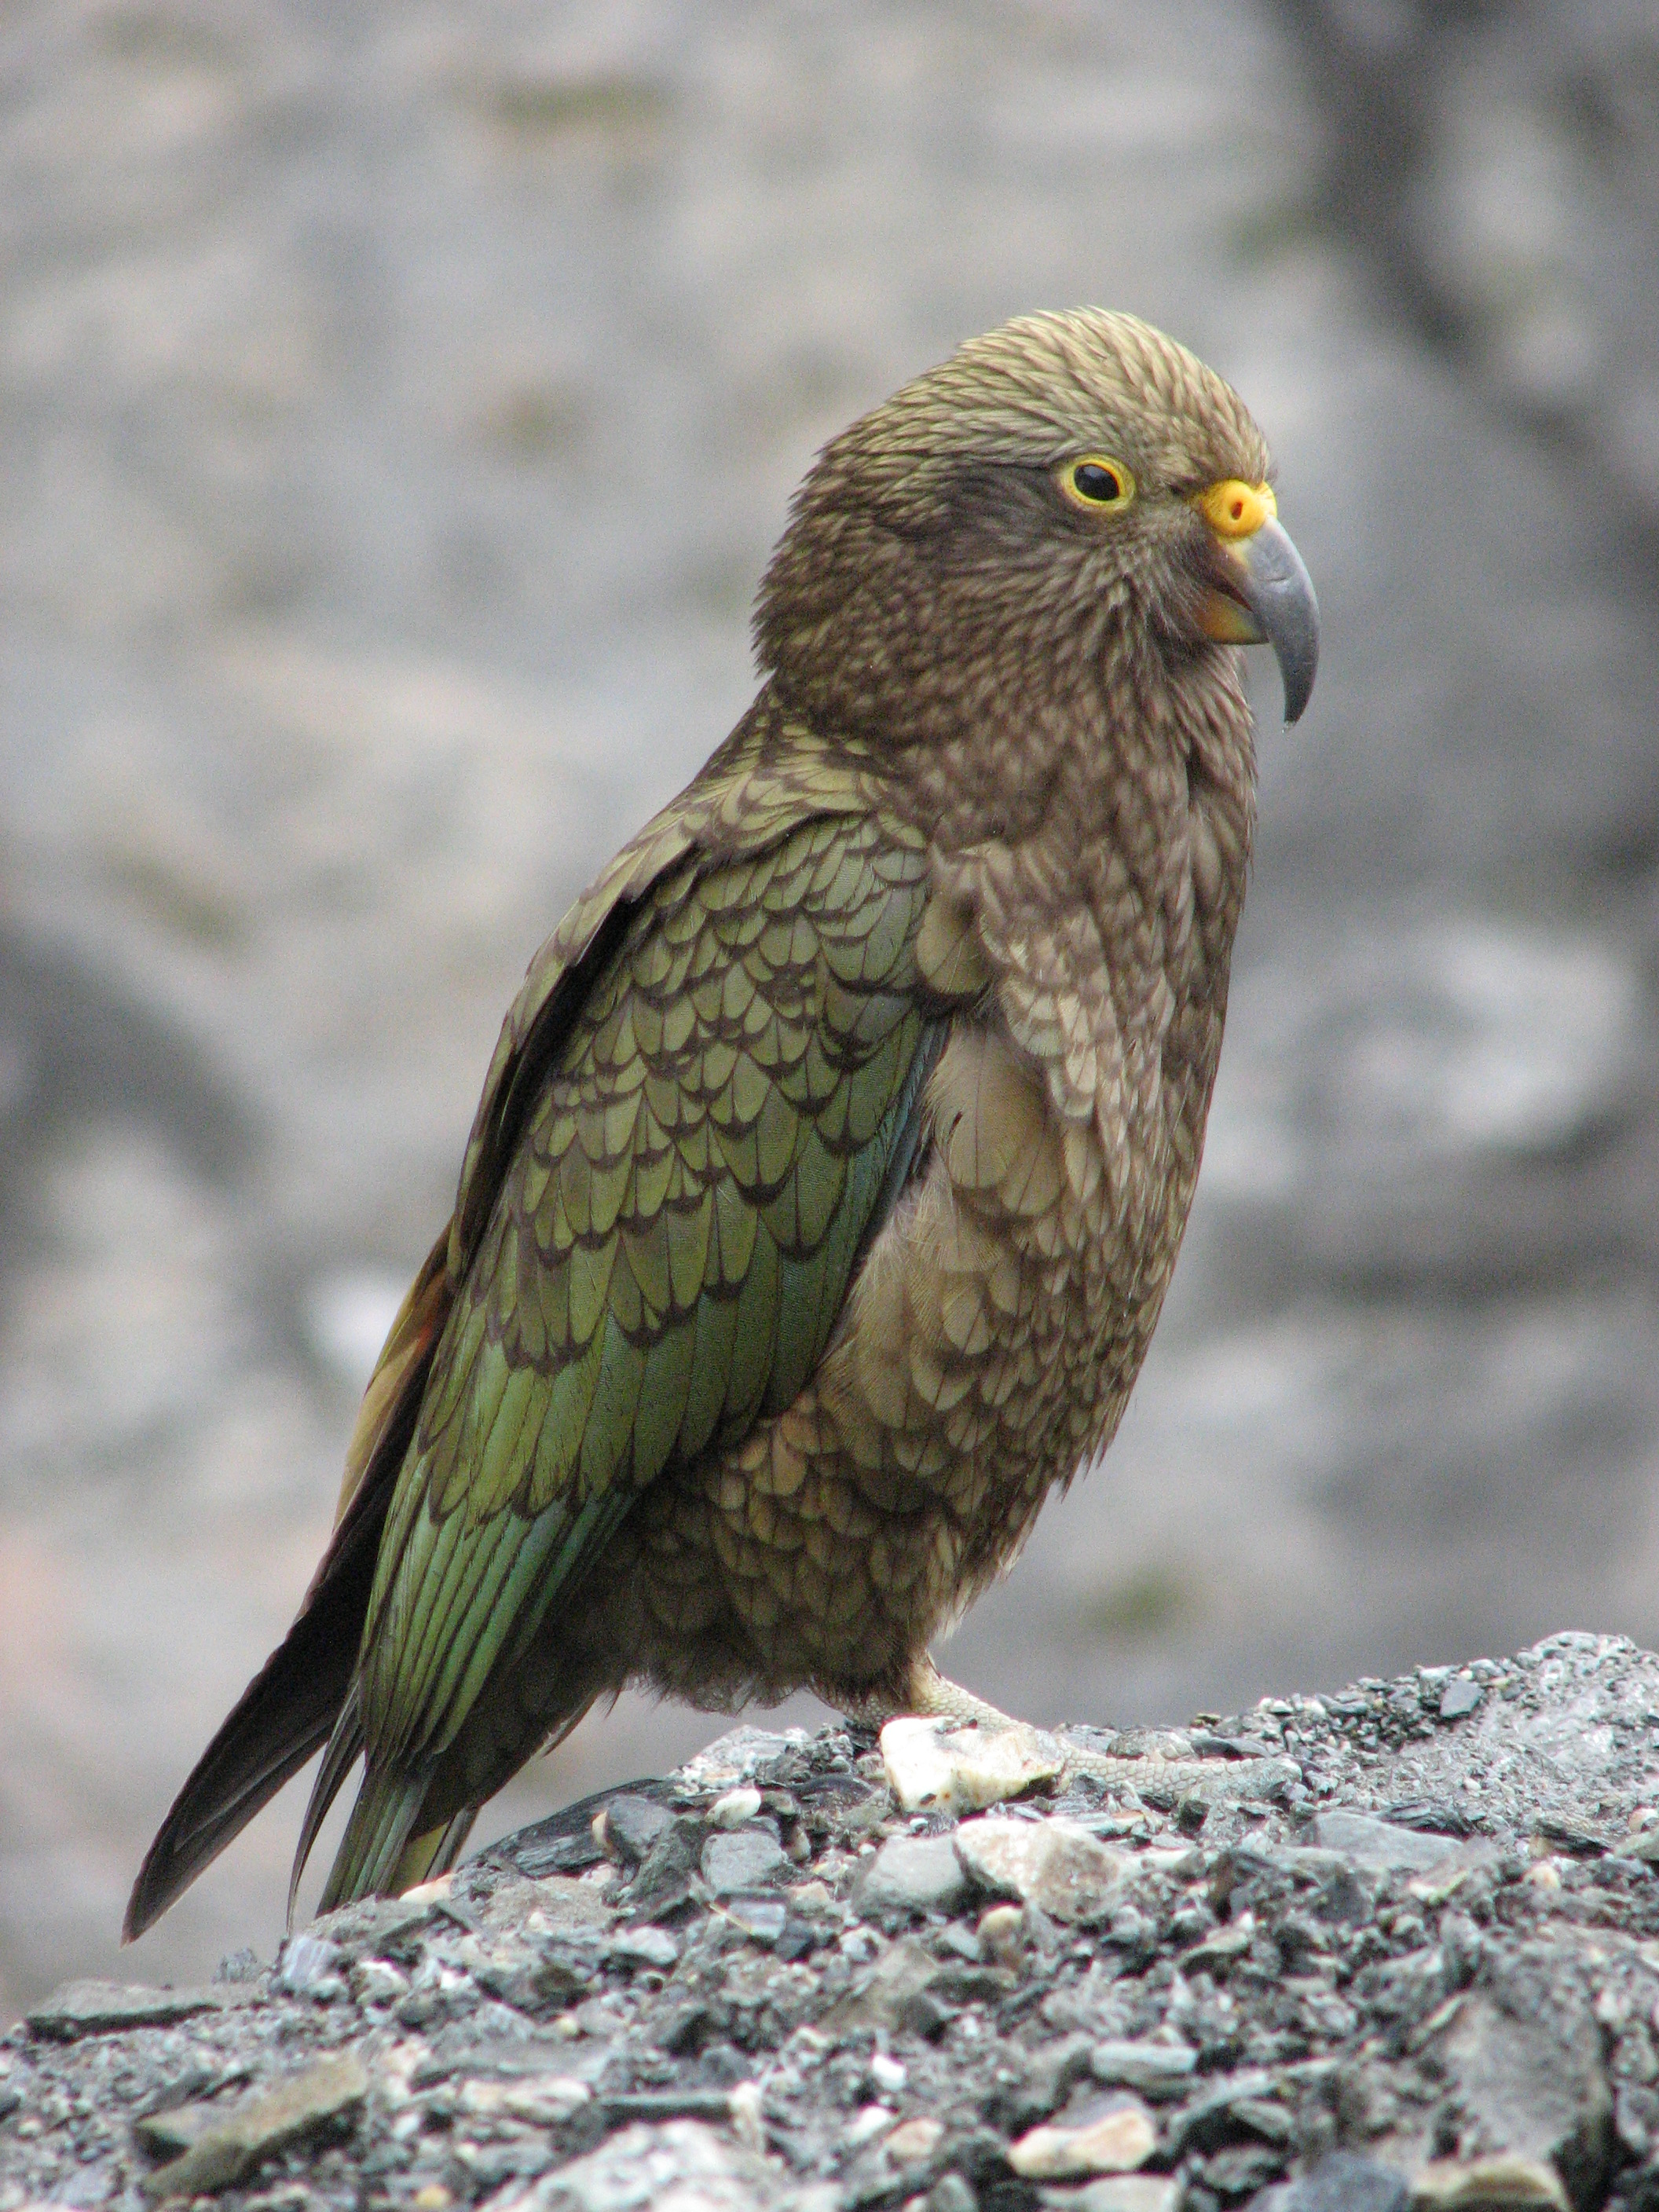 File:Kea.jpg - Wikipedia